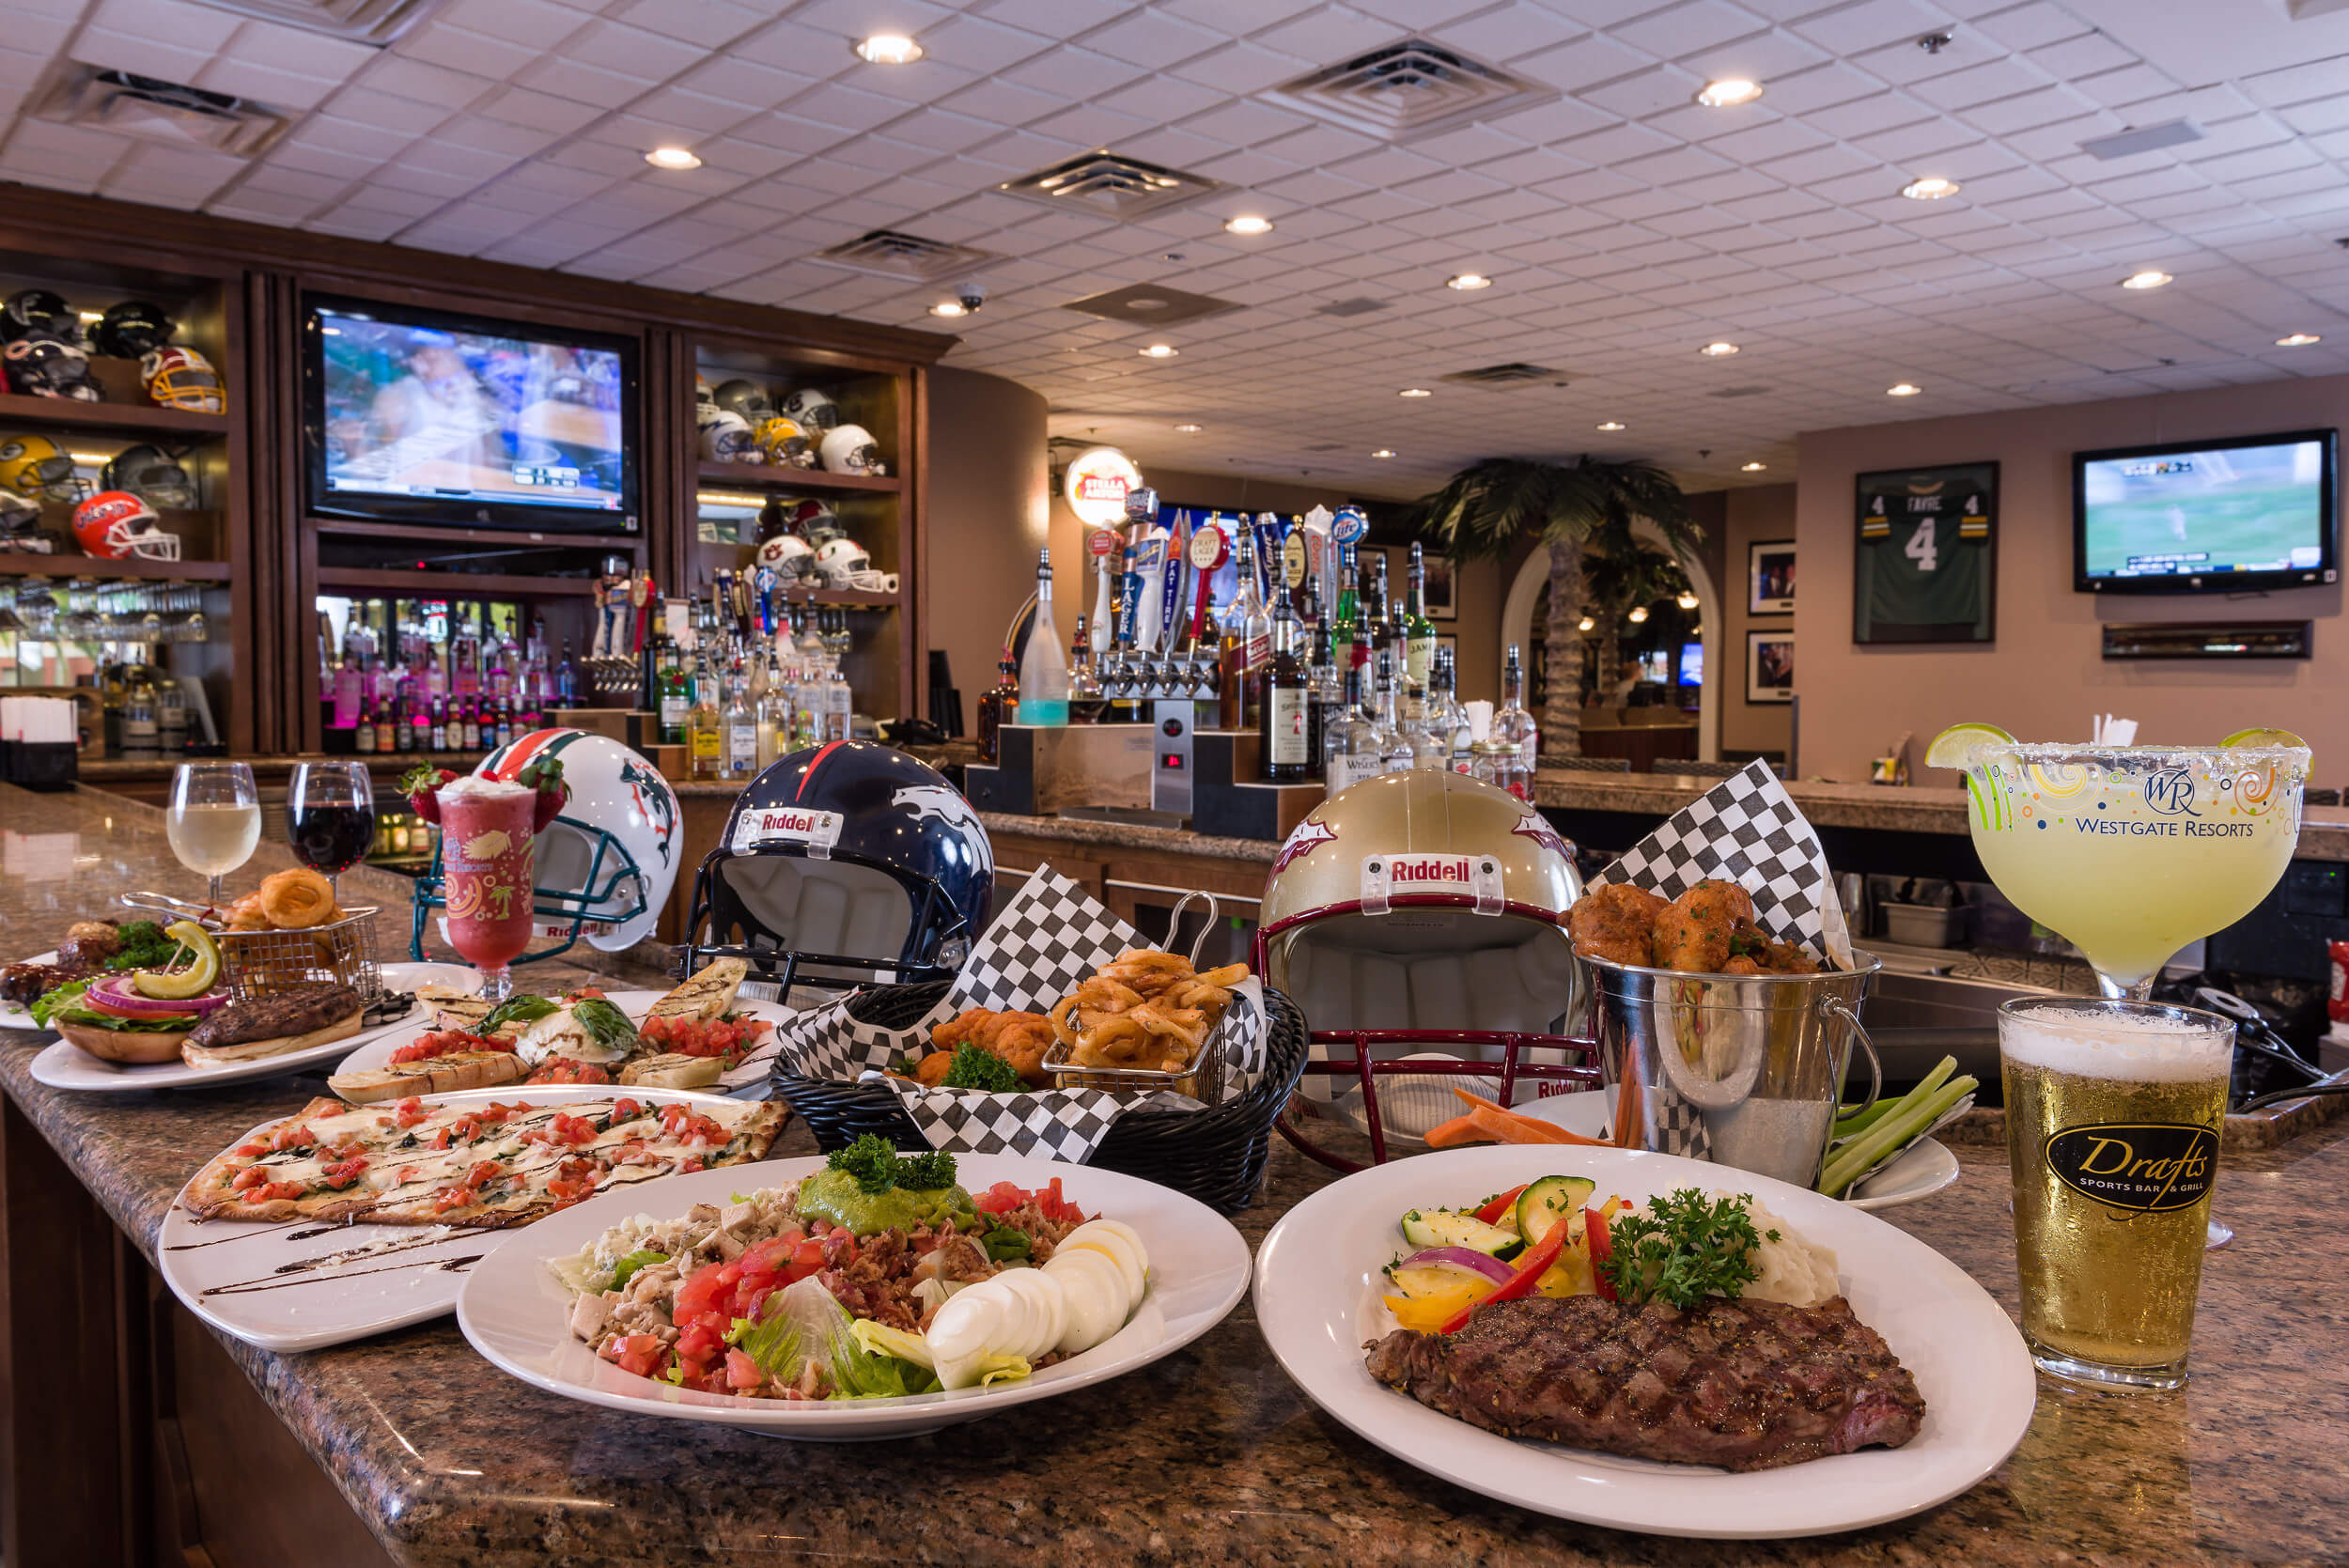 Drafts Sports Bar Decorated with Food and Helmets | Westgate Vacation Villas Resort & Spa | Orlando, FL | Westgate Resorts